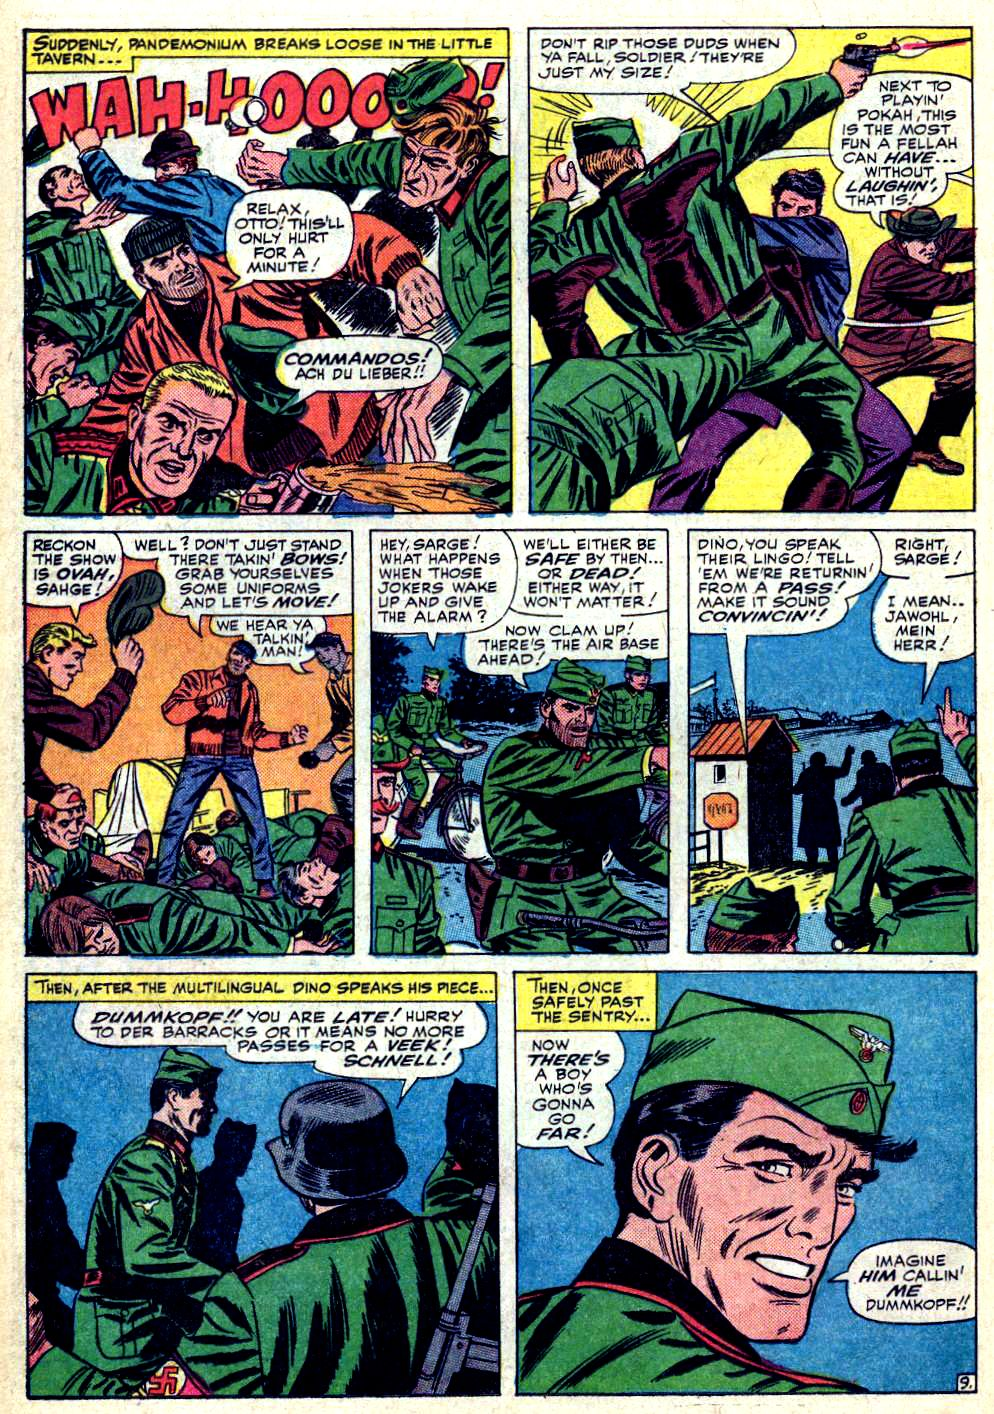 Read online Sgt. Fury comic -  Issue #19 - 14